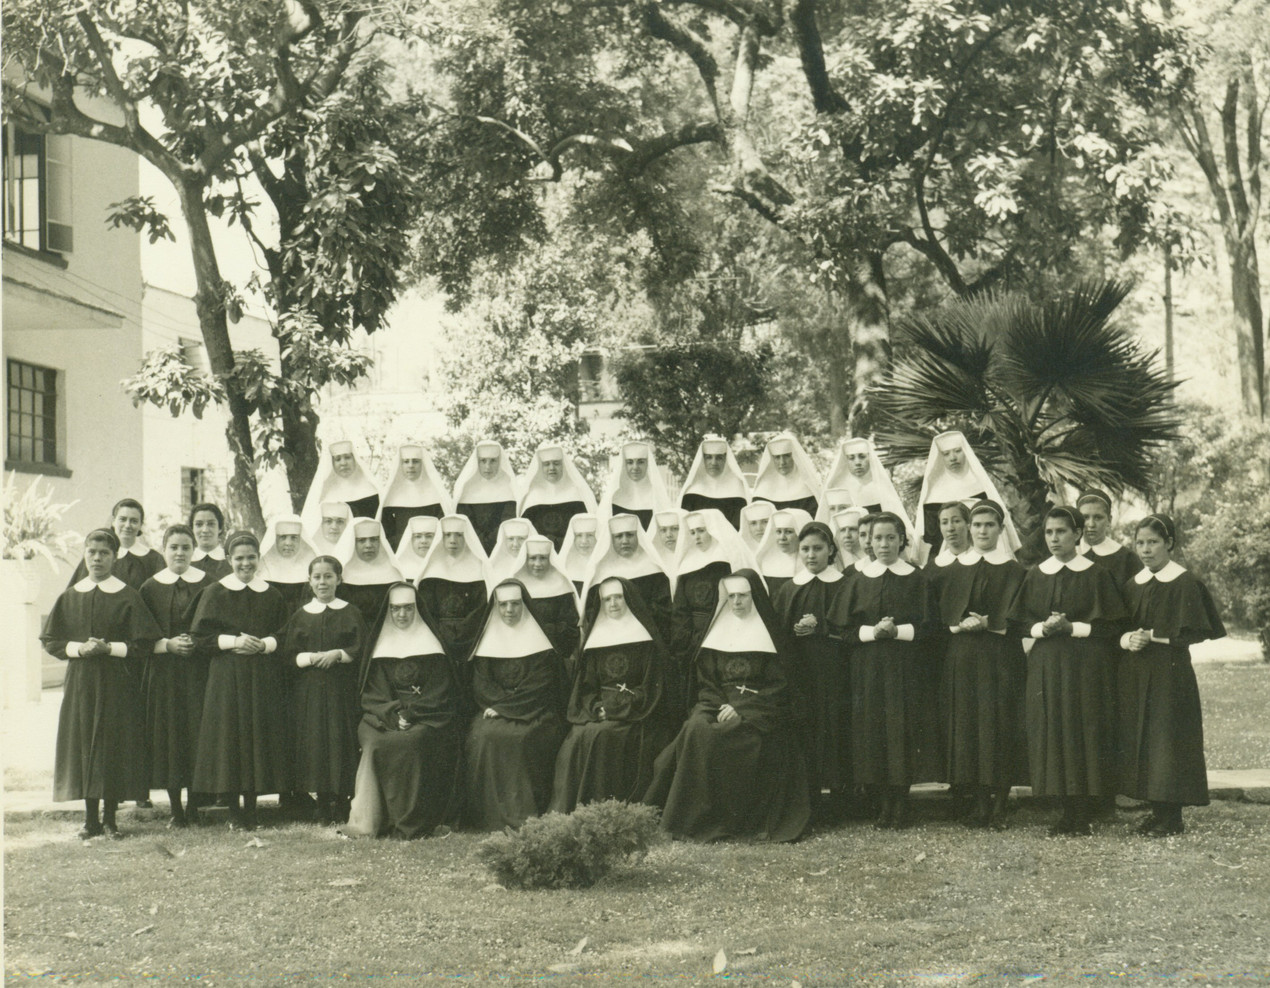 Until the mid-20th century, Catholic Sisters wore distinctive clothing. This photograph from the congregation shows women wearing black veils, who are professed sisters. Novices, who are not fully invested, wear white veils. Young women in collared dresses are postulants still receiving instruction.